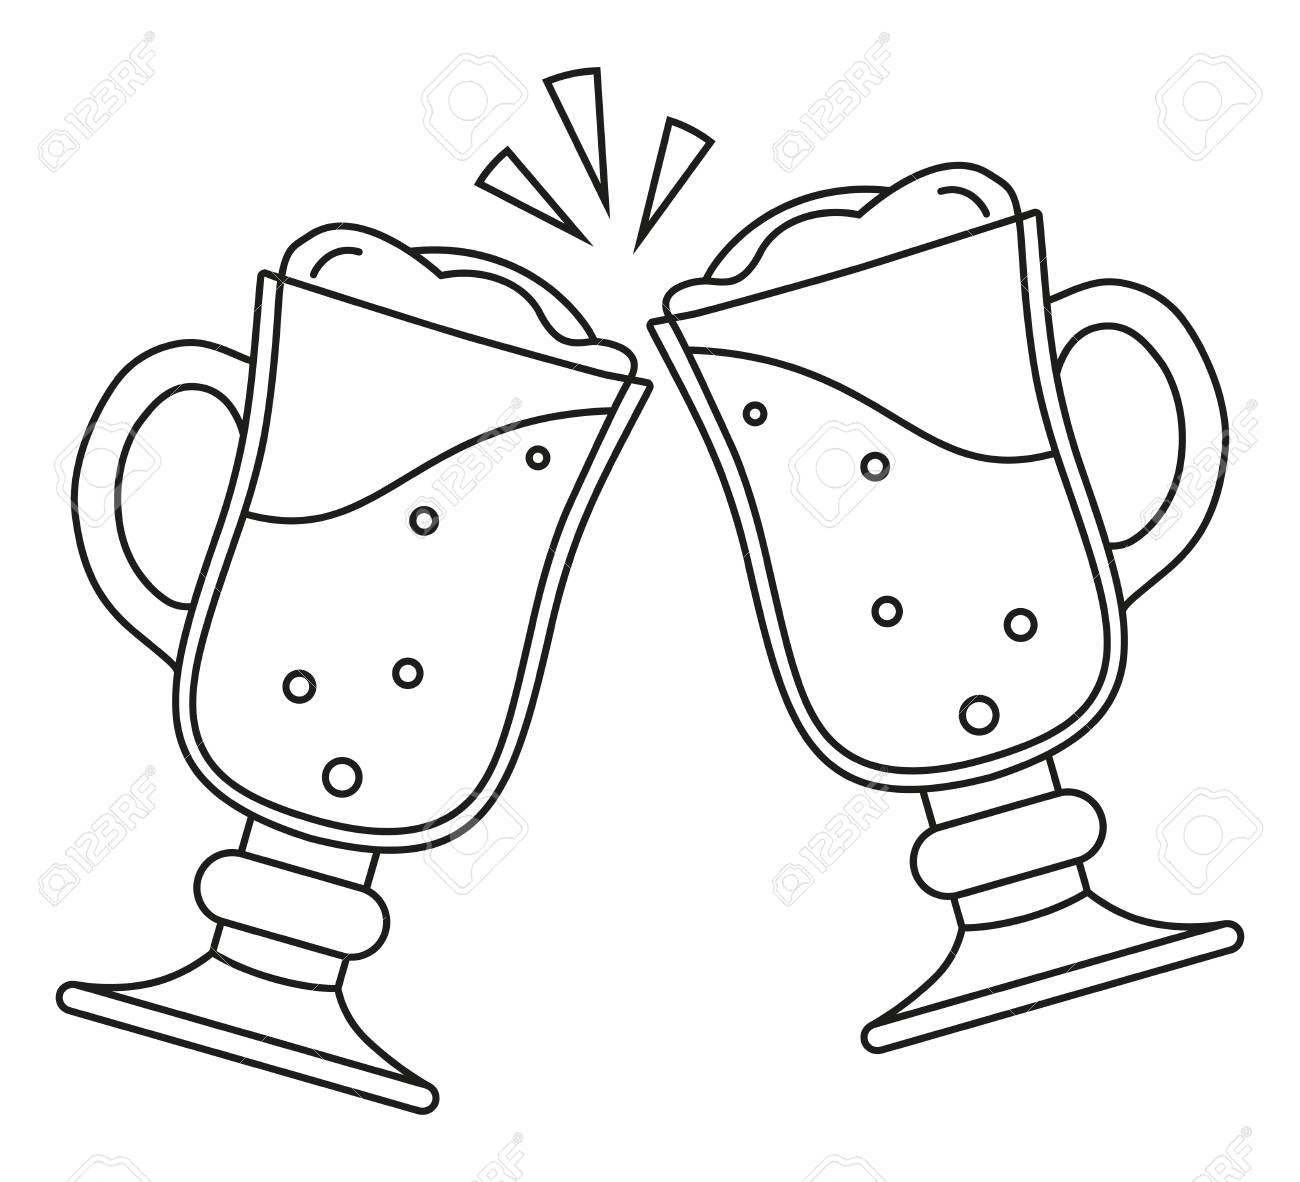 Line Art Black And White Two Fancy Beer Glass. Coloring Book Page ...